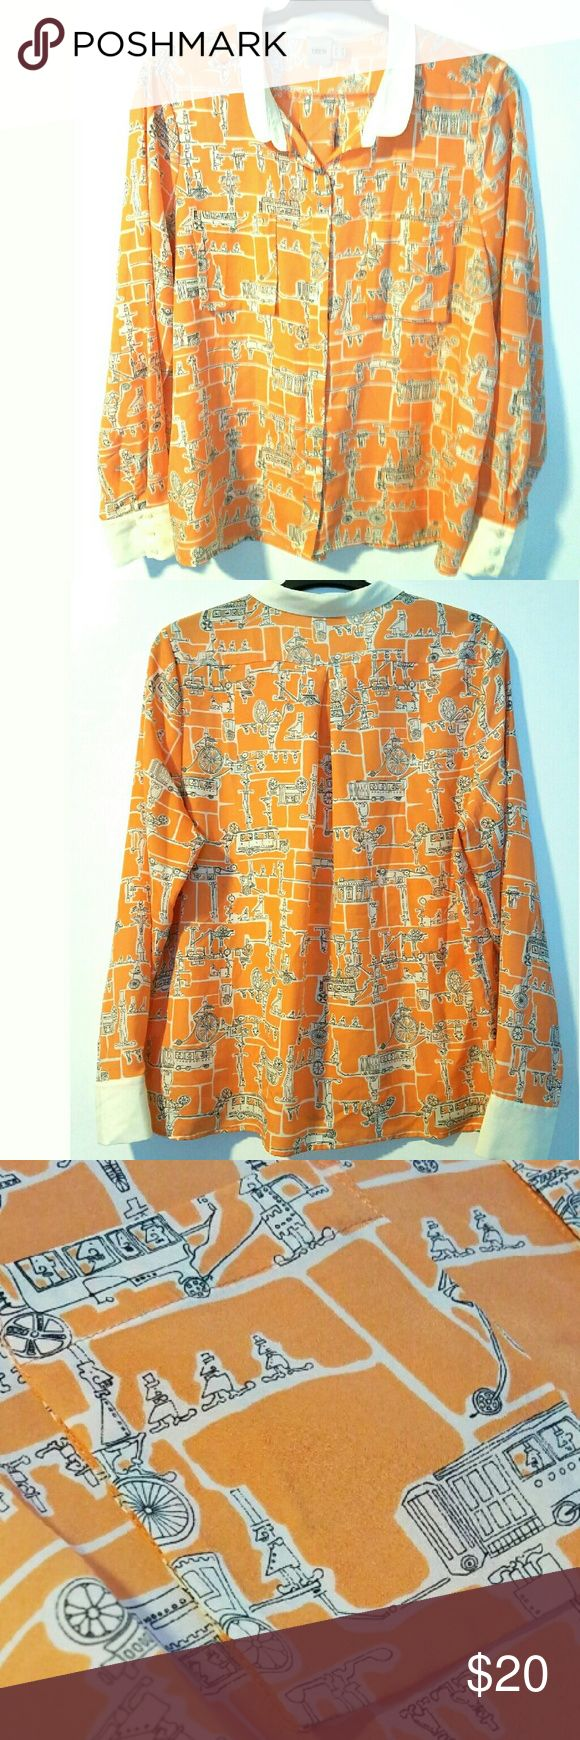 """ASOS 12 Orange Cartoon Print French Cuff Shirt This ASOS 12 Orange Cartoon Print French Cuff Shirt is in great used condition. Bust measures 23.5"""" across laying flat, measured from pit to pit, so 47"""" around. No stretch. 100% polyester. Comes with extra buttons attached to fabric tag. 26"""" long. ::: Bundle and save! ::: No trades. ASOS Tops Button Down Shirts"""